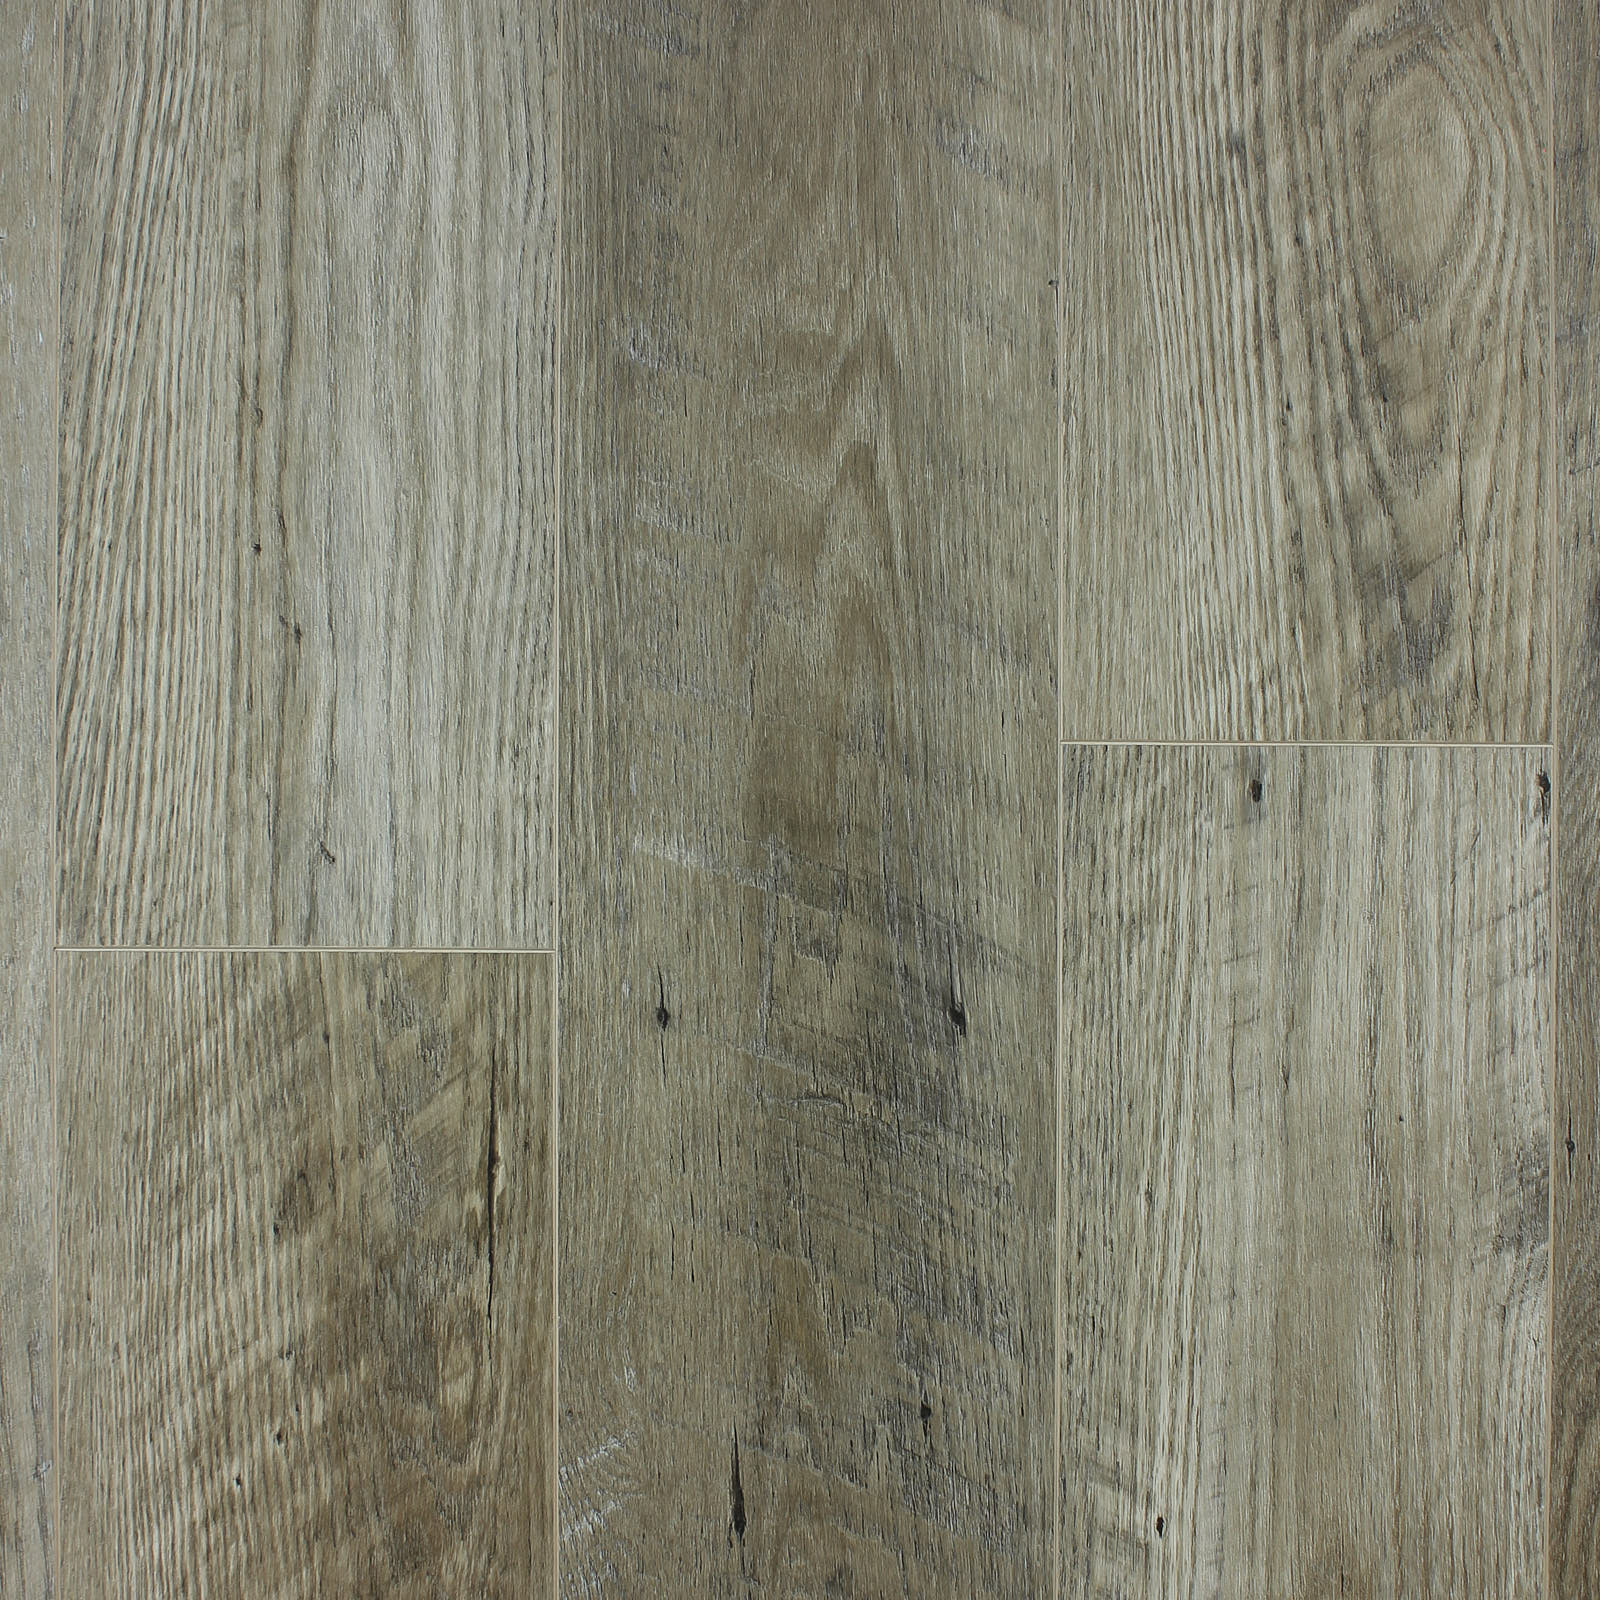 Northcreek Bellewood Rigid Core Vinyl Plank Flooring